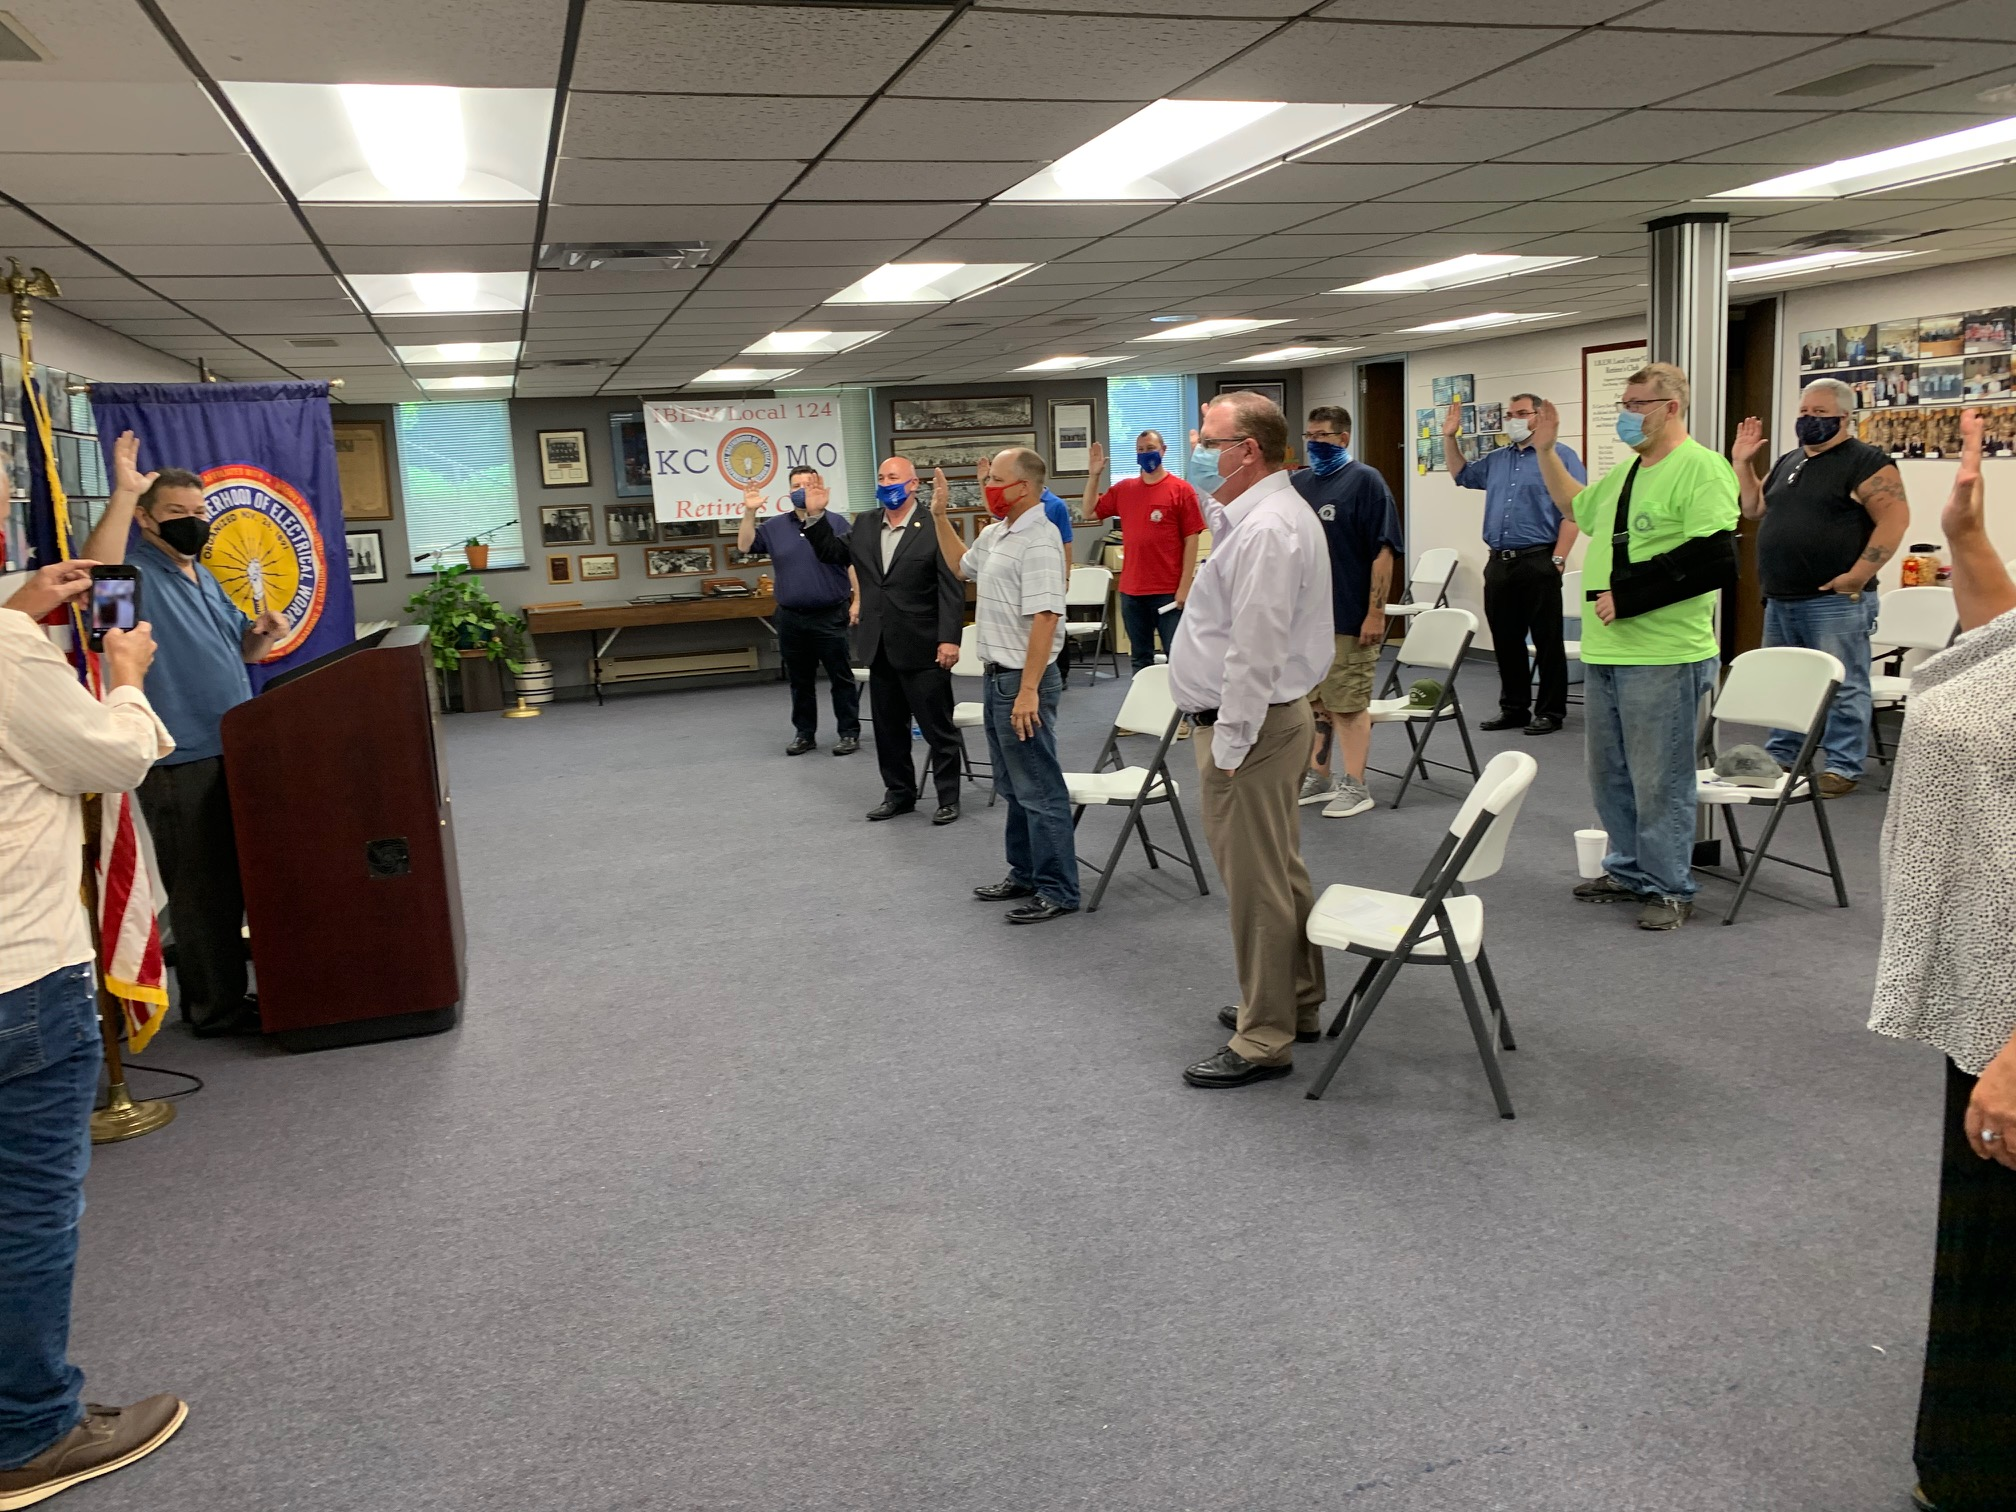 IBEW LOCAL 124 OFFICERS ARE SWORN IN